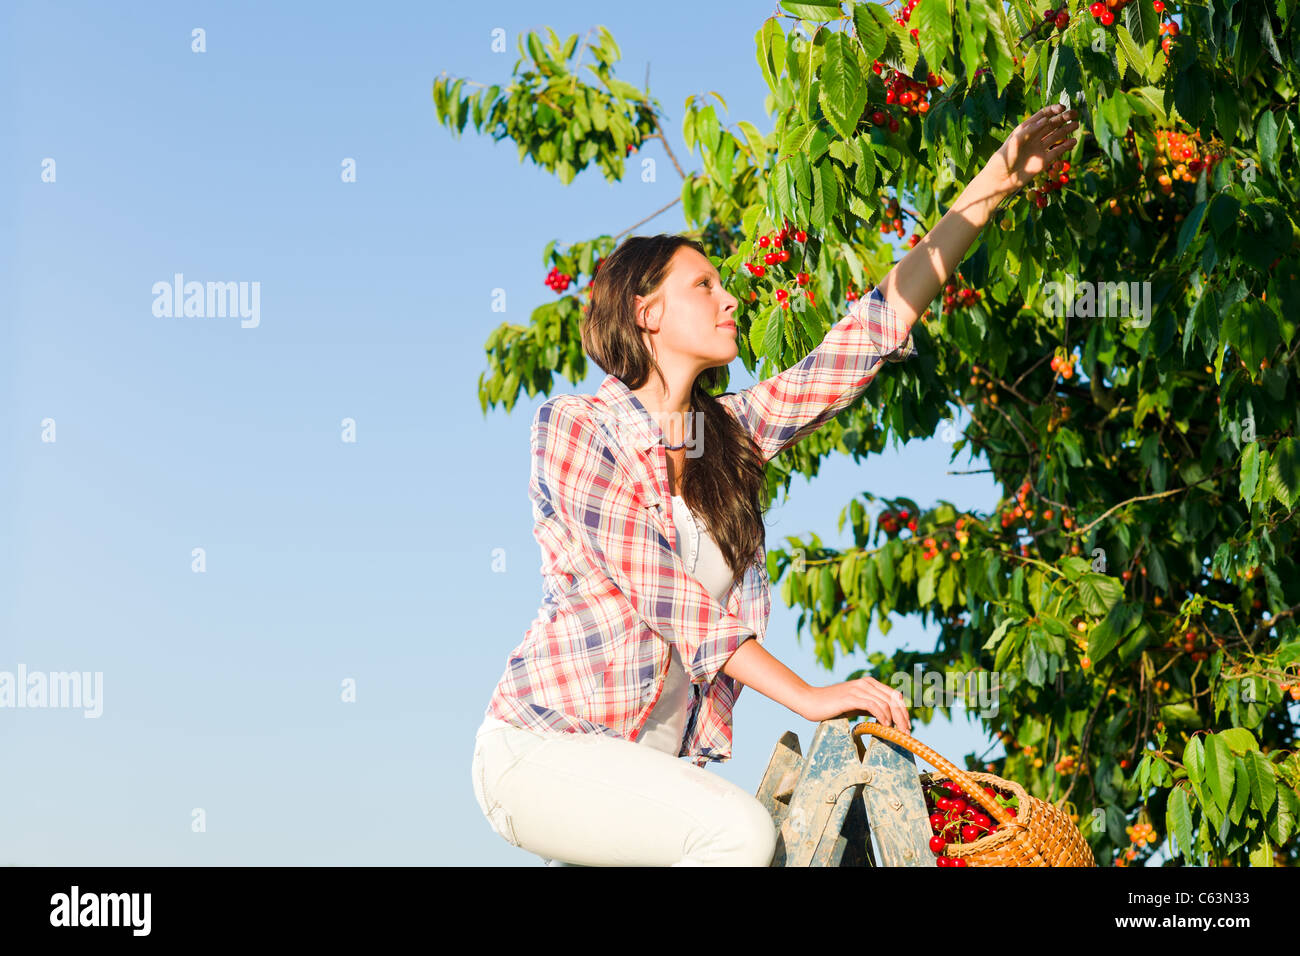 Cherry tree beautiful woman harvest summer sunny countryside on ladder - Stock Image